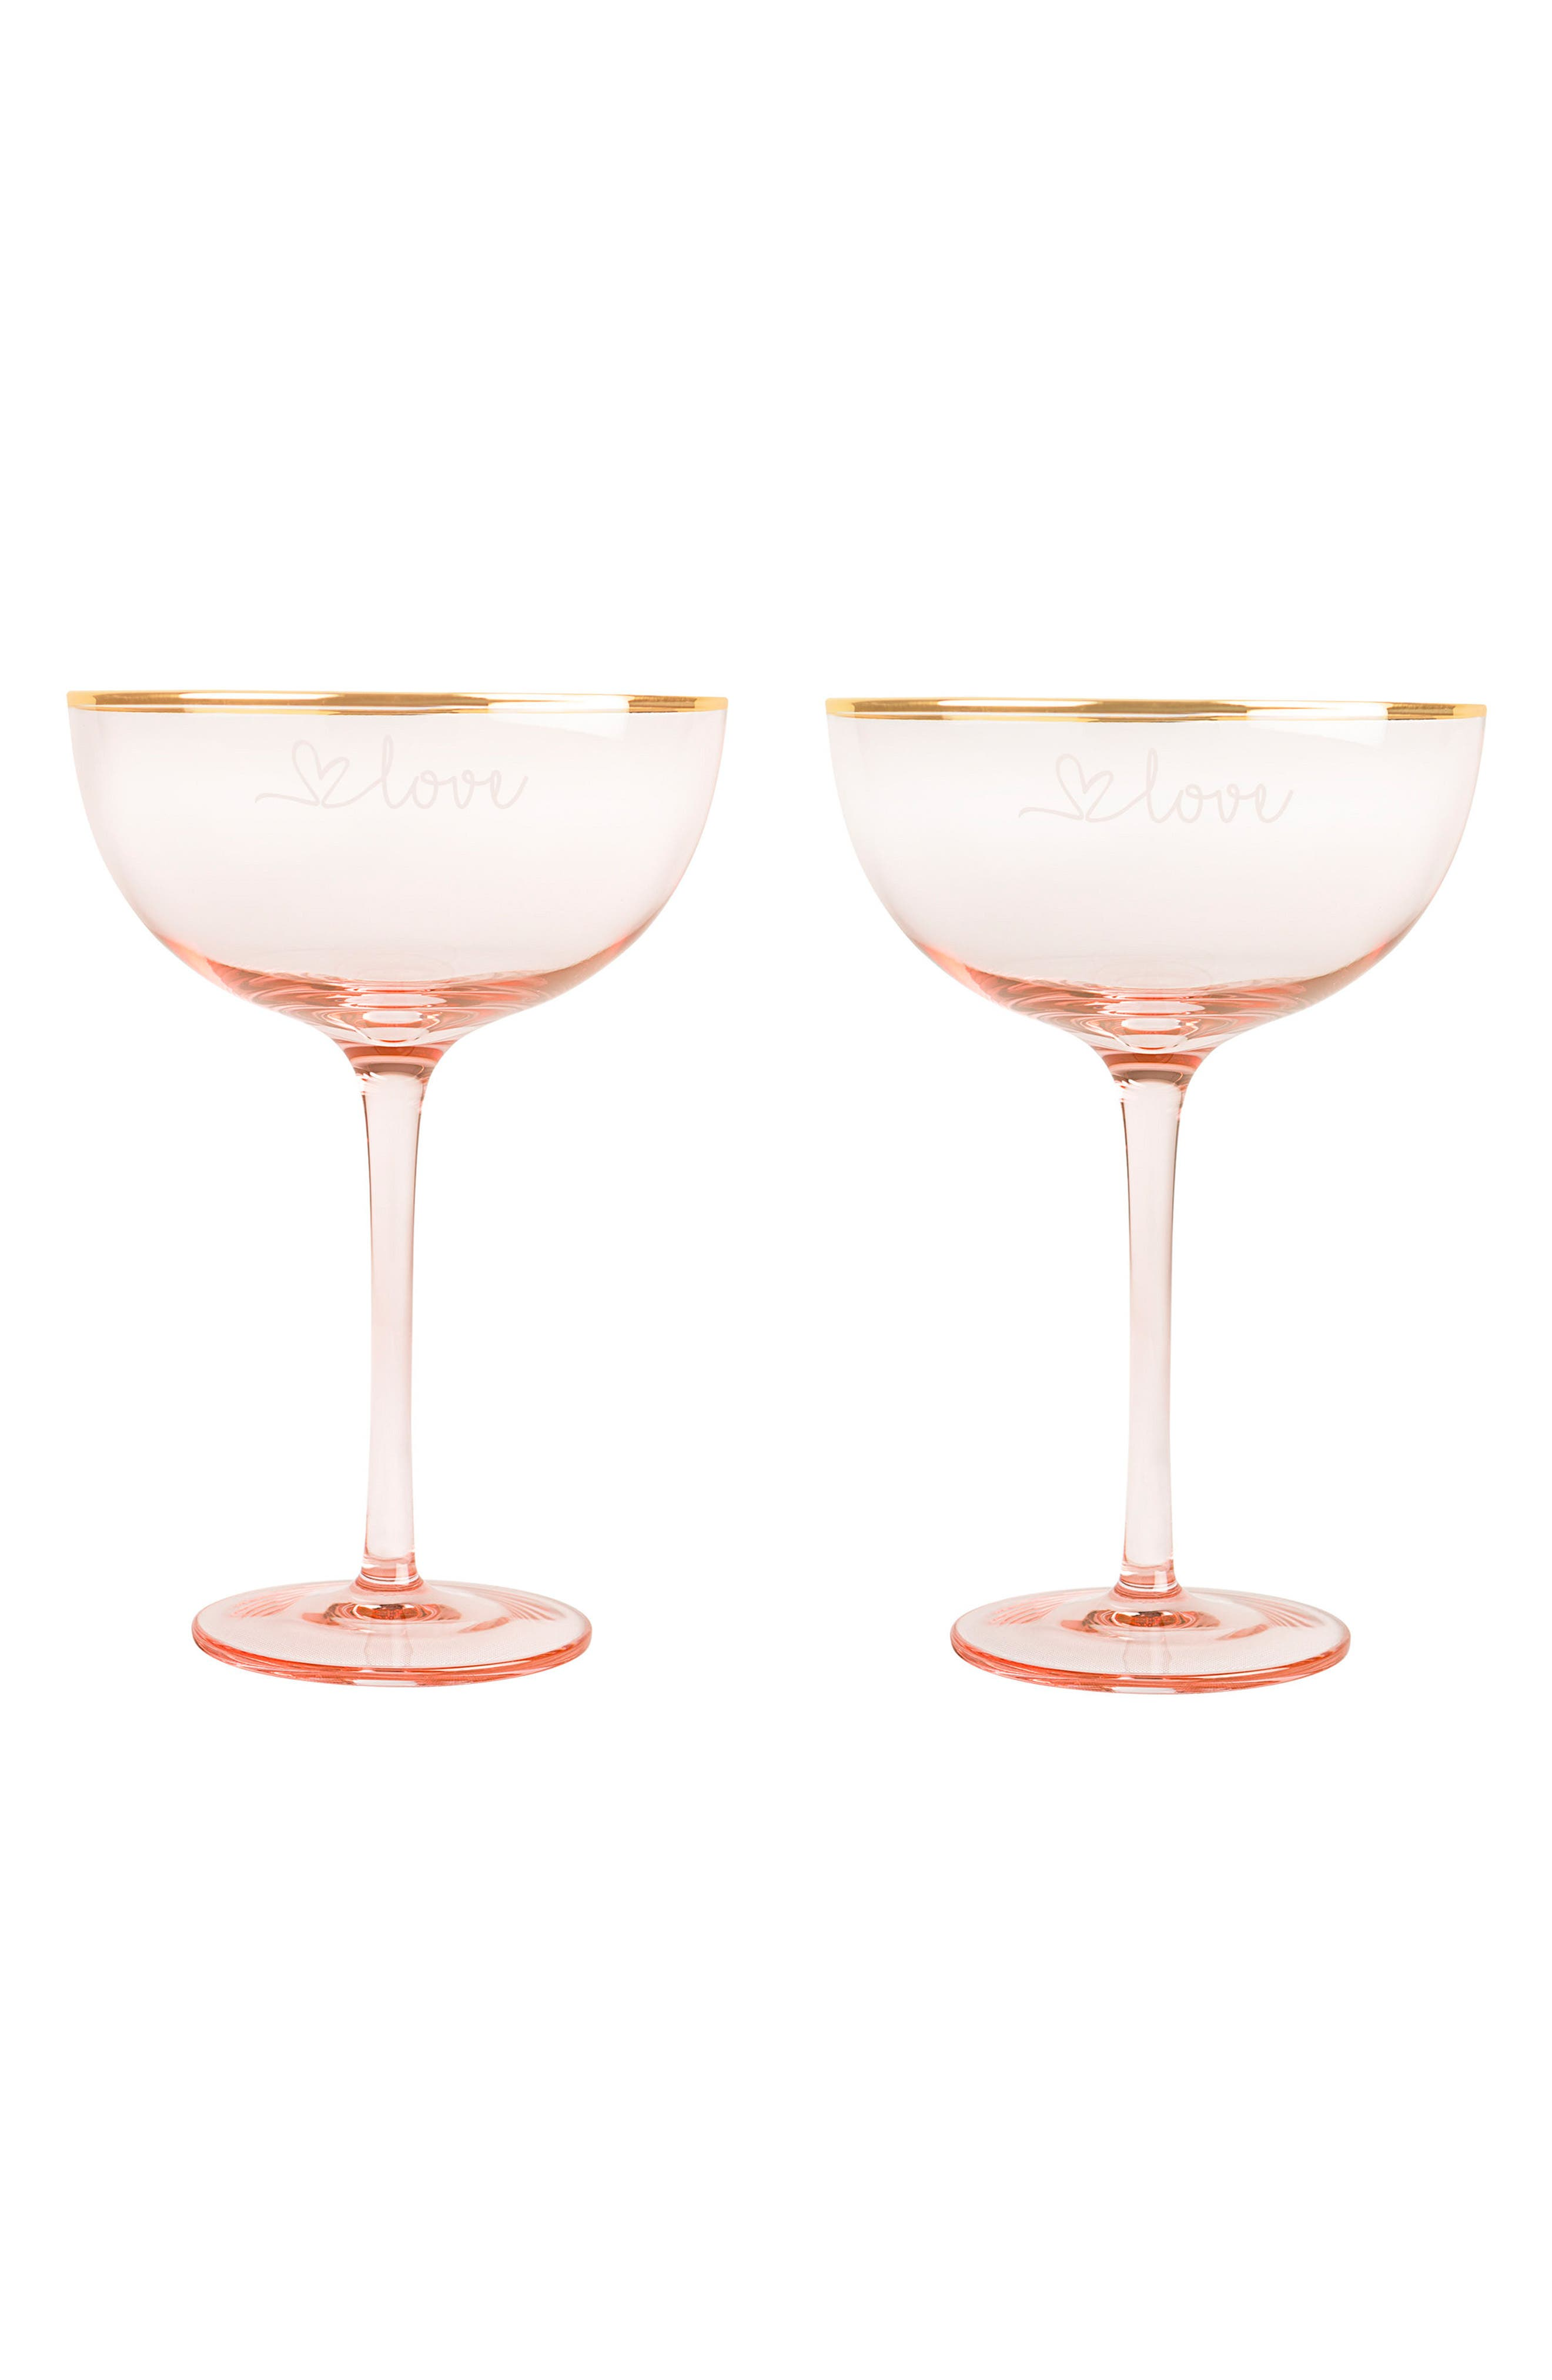 Love Set of 2 Champagne Coupes,                             Main thumbnail 1, color,                             220